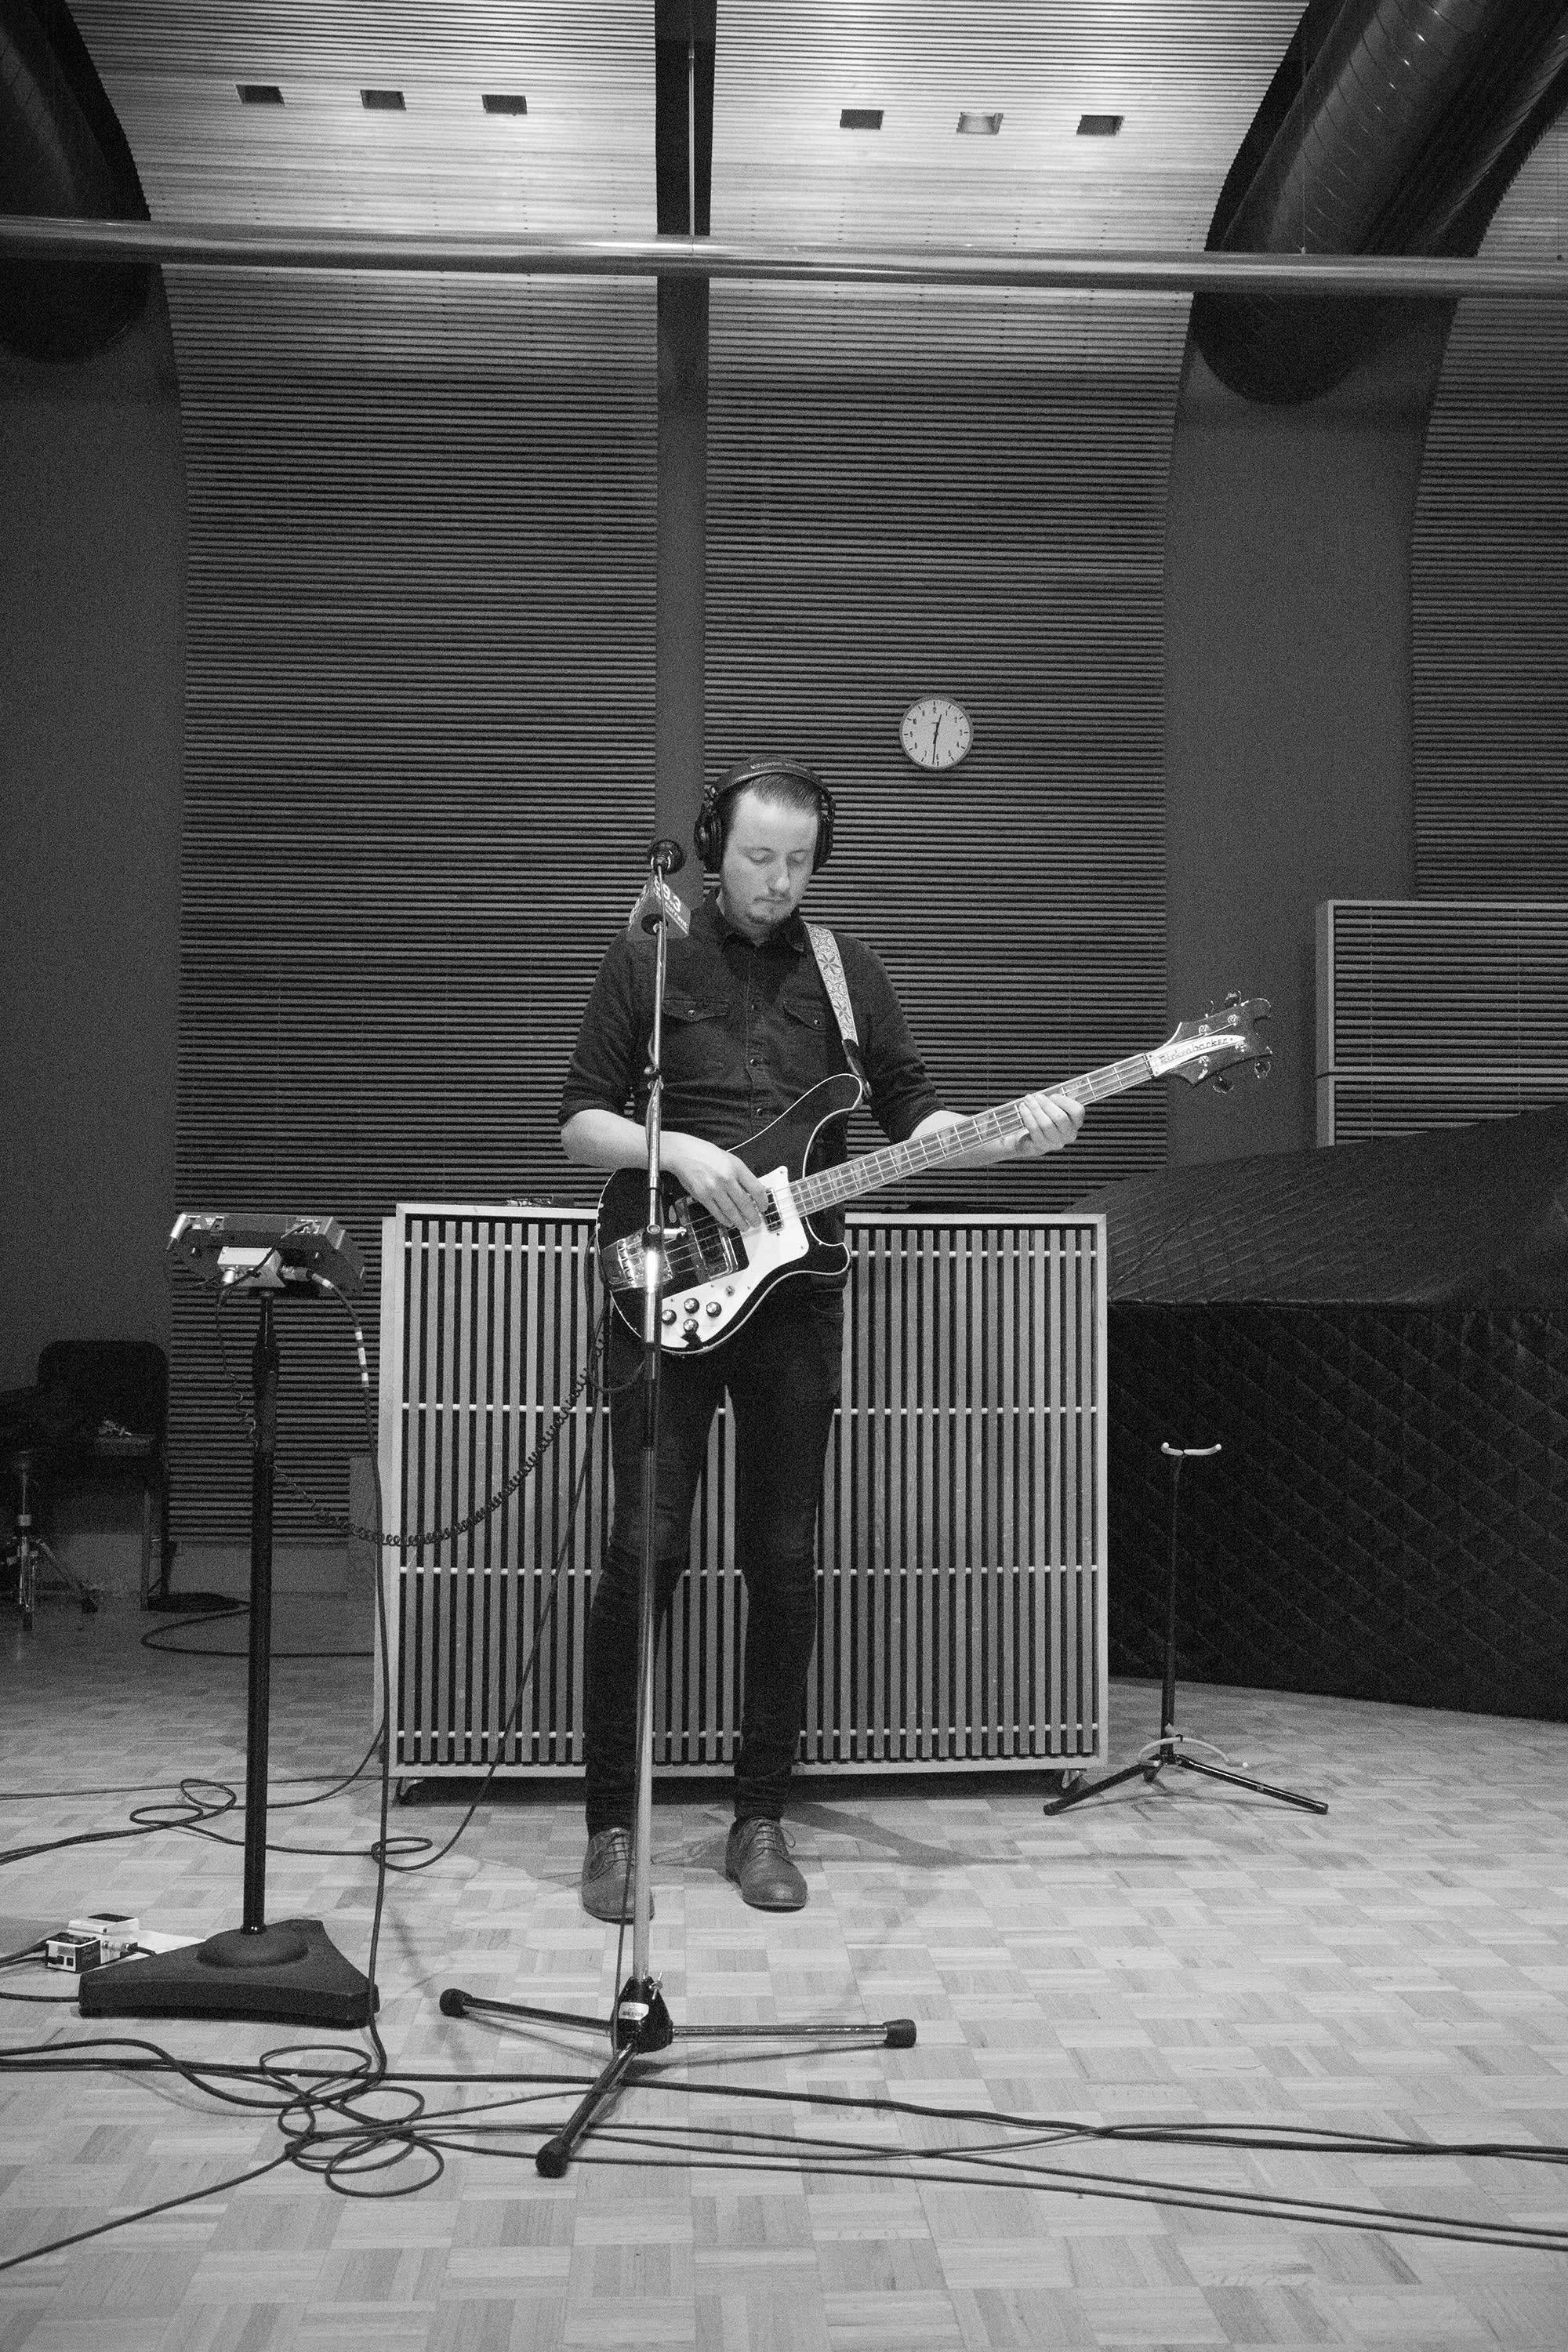 Aaron McClellan on bass with Alejandro Escovedo